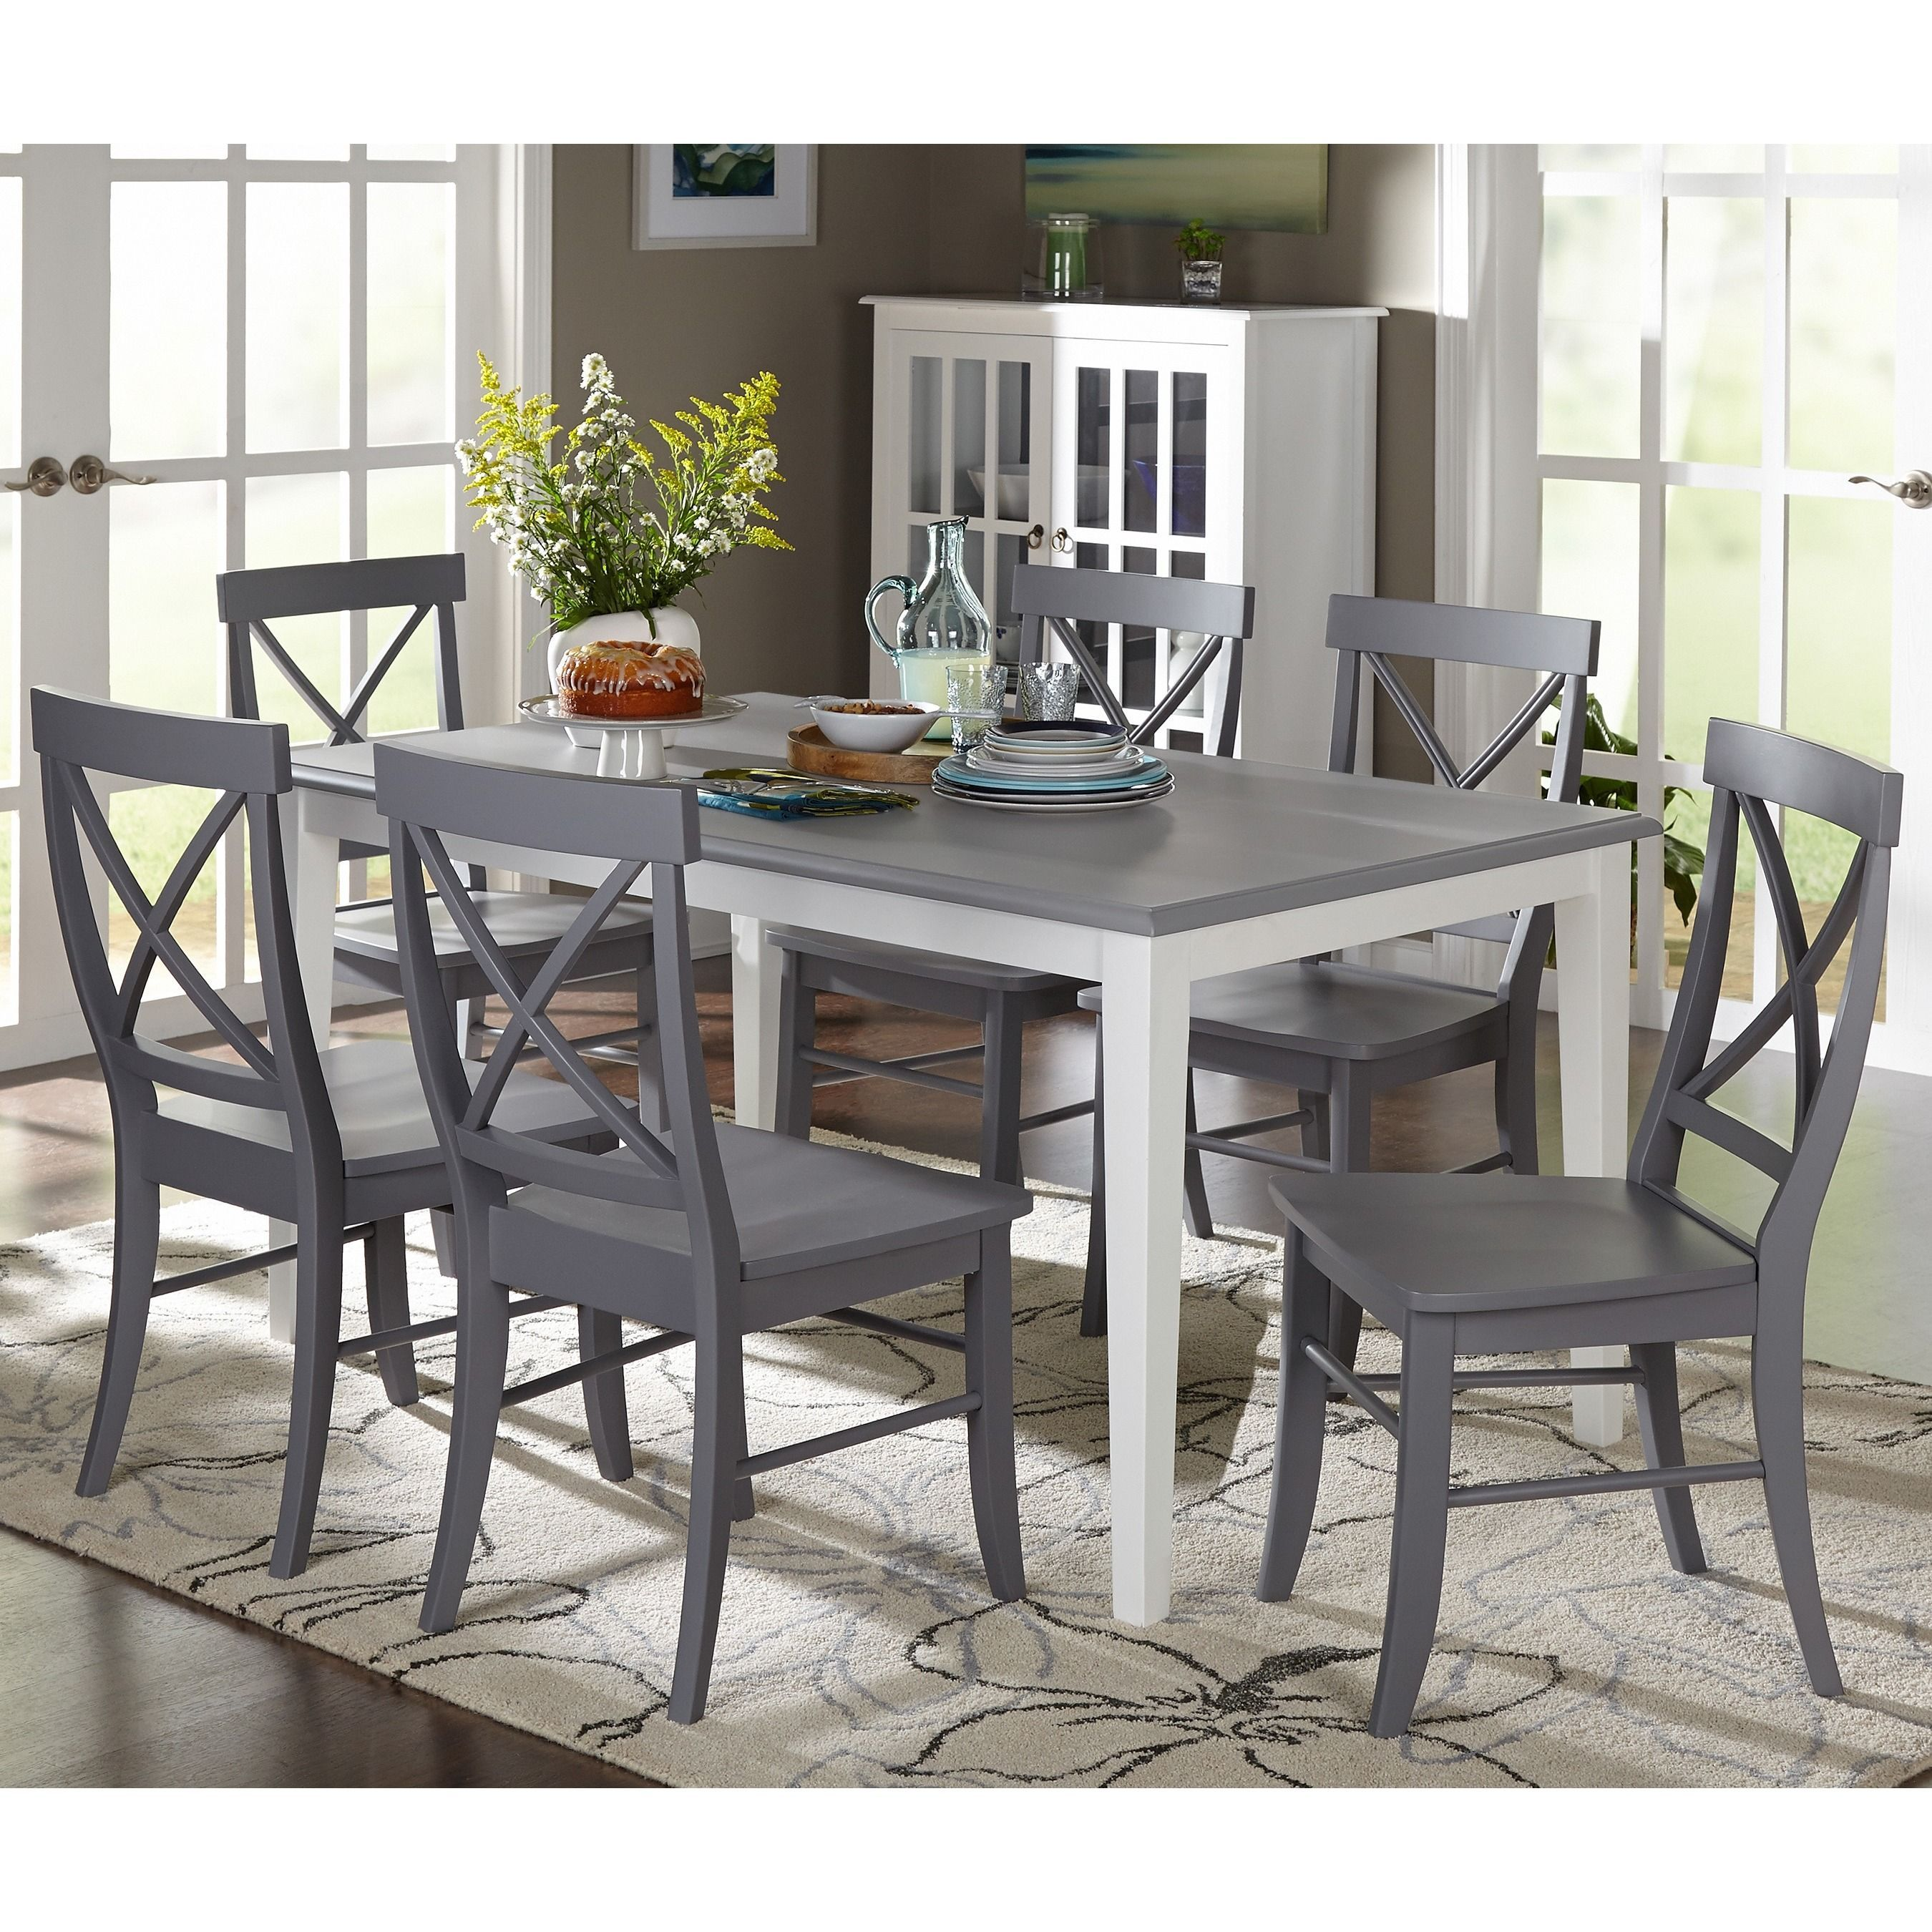 Best Simple Living 7 Piece Helena Dining Set Grey Gray 400 x 300